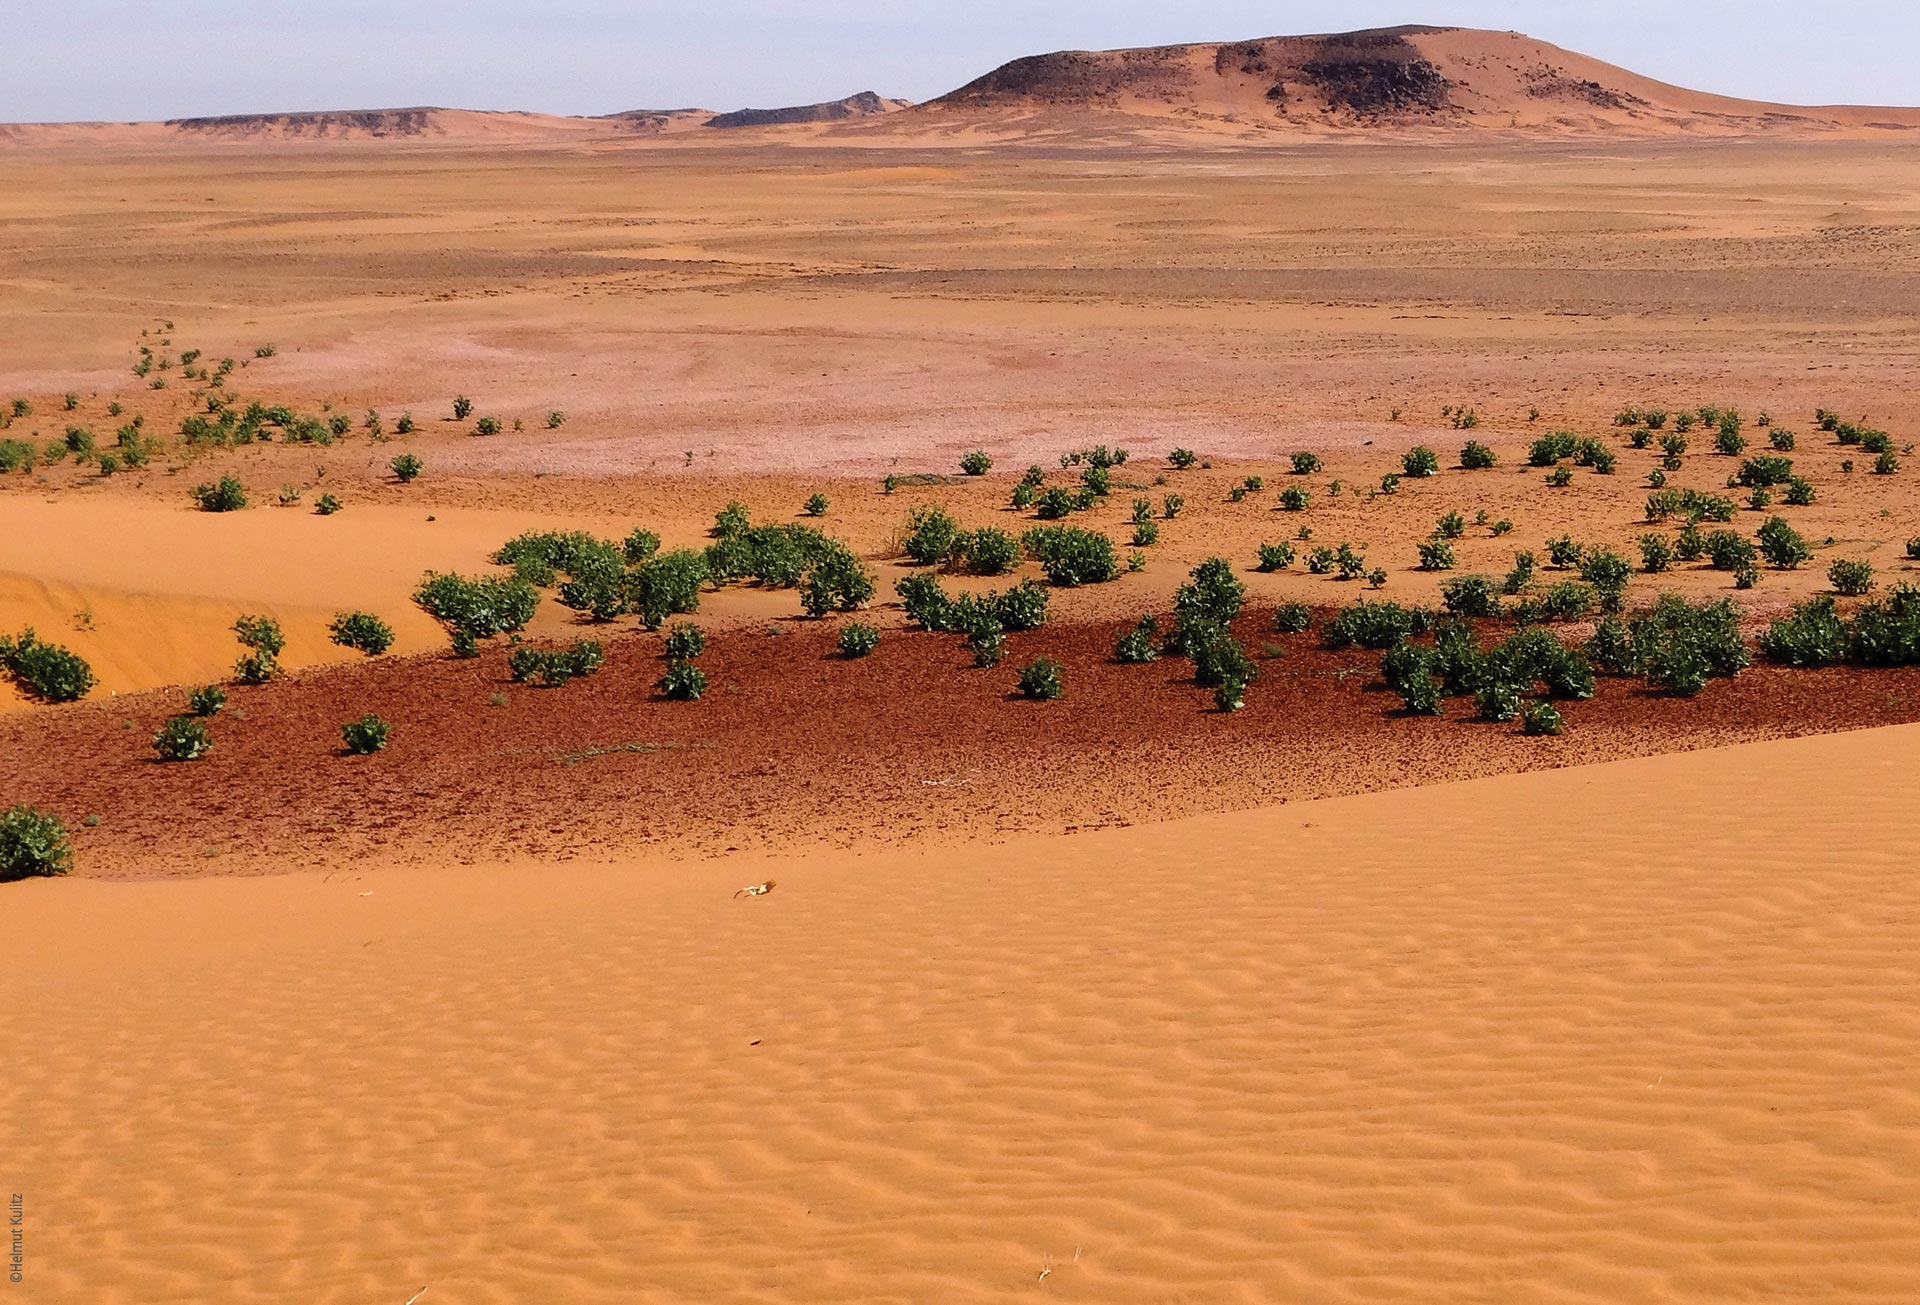 Research and expeditions in nothern Chad, the desert, Explore Chad